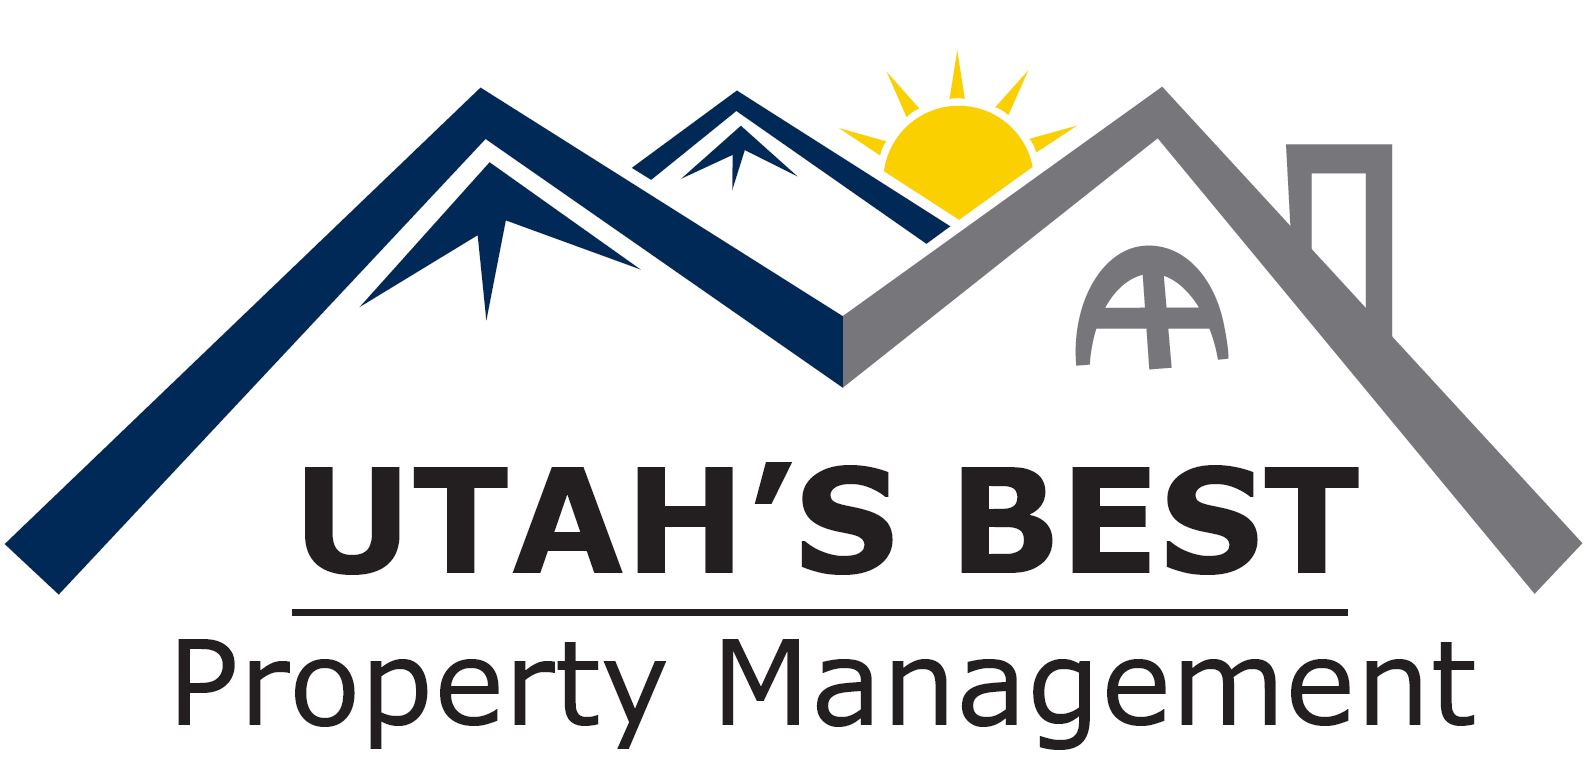 Utah's Best Property Management | Vacation Rental Property Management in Utah - Utah's Best Vacation Rentals